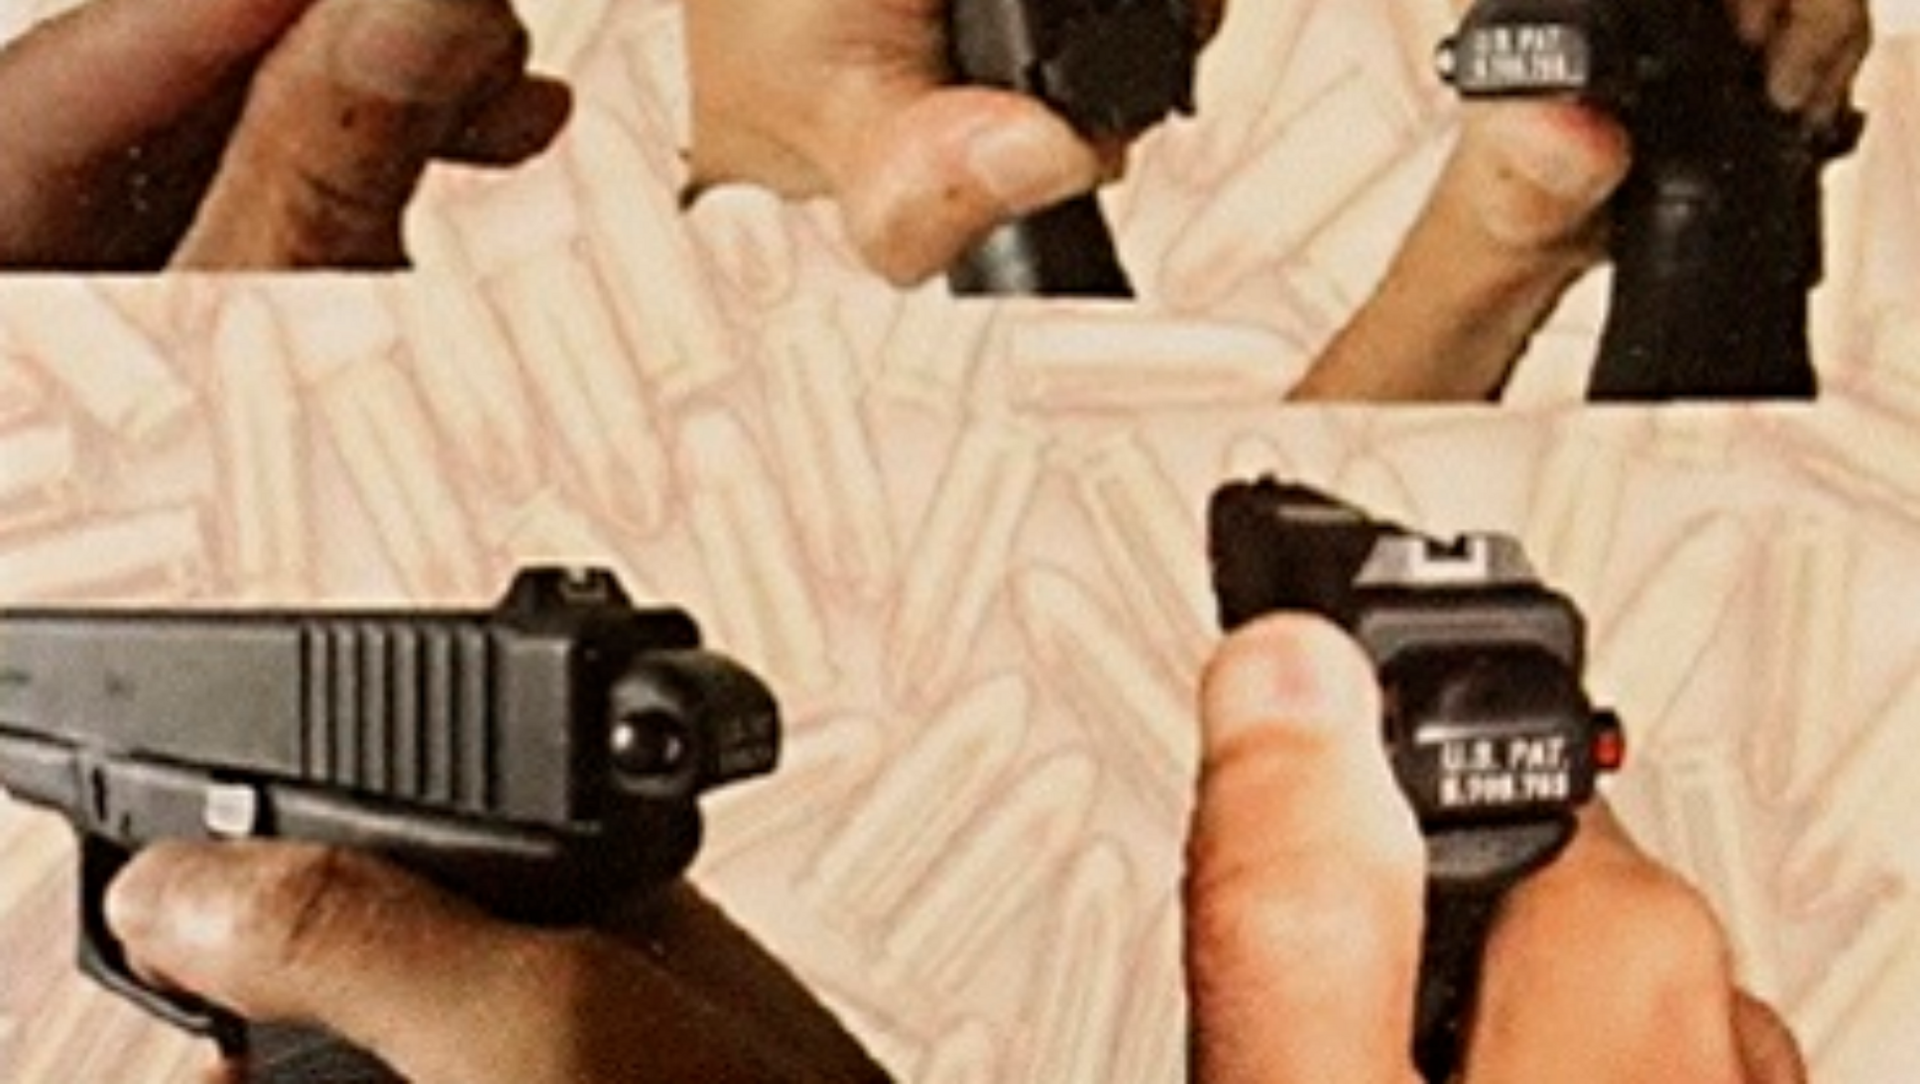 A Glock Switch is a A relatively simple, albeit illegal, device that allows a conventional semi-automatic Glock pistol to function as a fully automatic firearm. The switch is classified as a machinegun under federal law. - Sputnik International, 1920, 03.08.2021